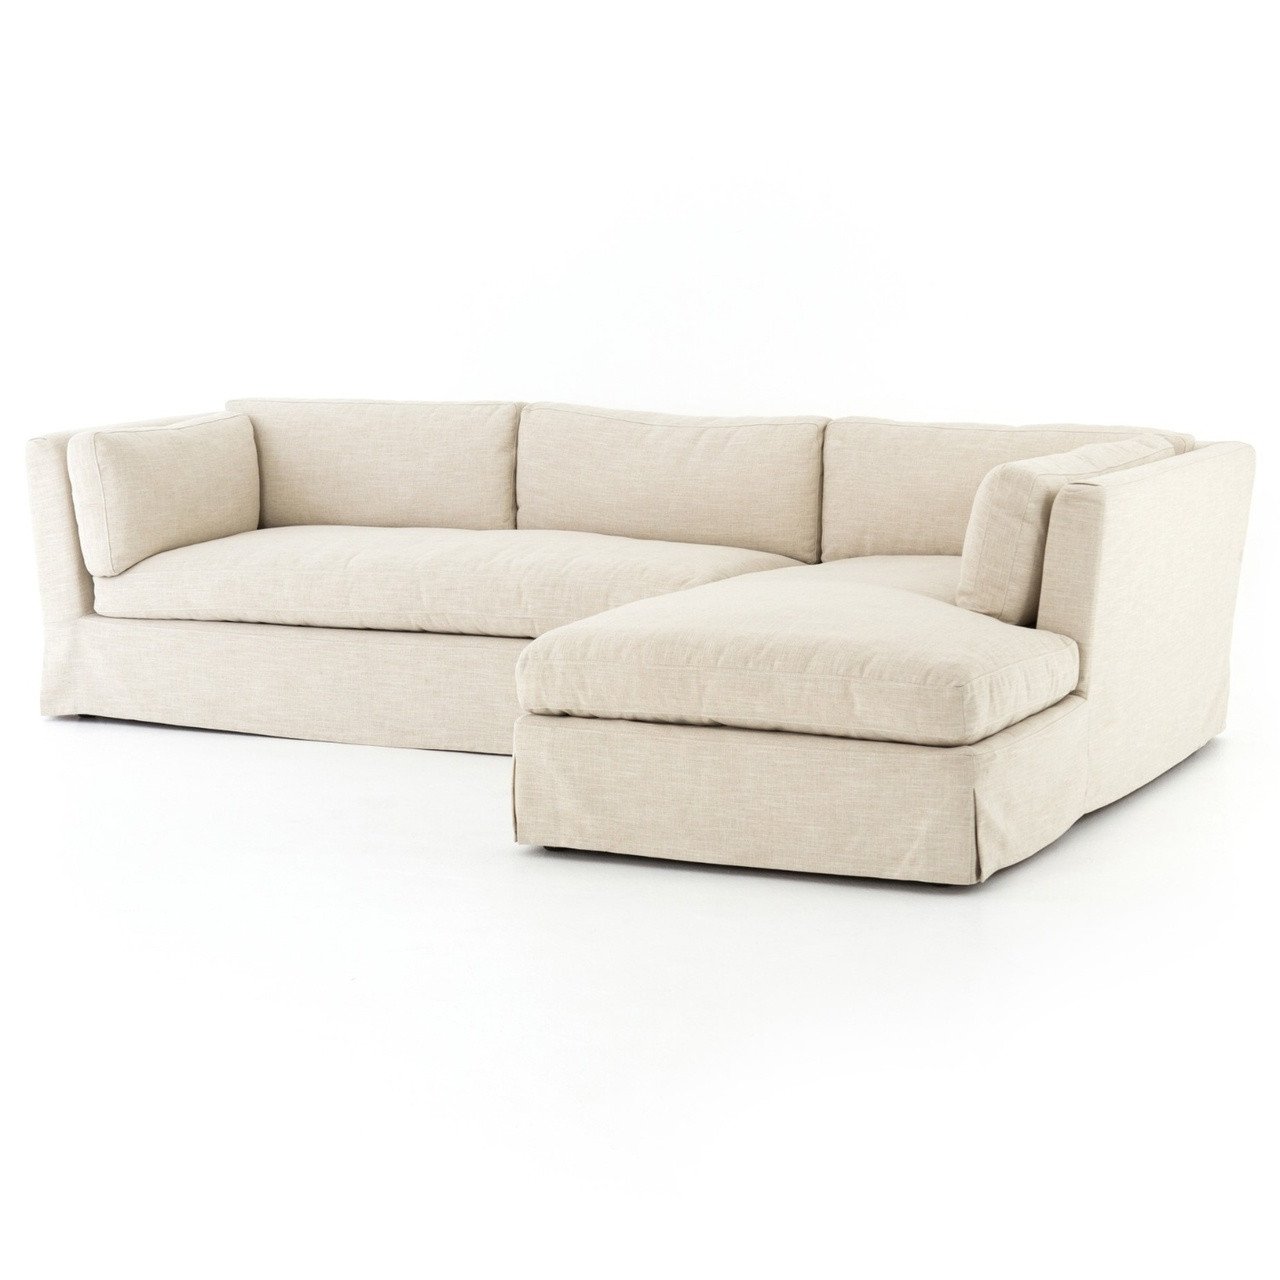 Garrison Coastal Ivory Slipcovered Sectional Sofa